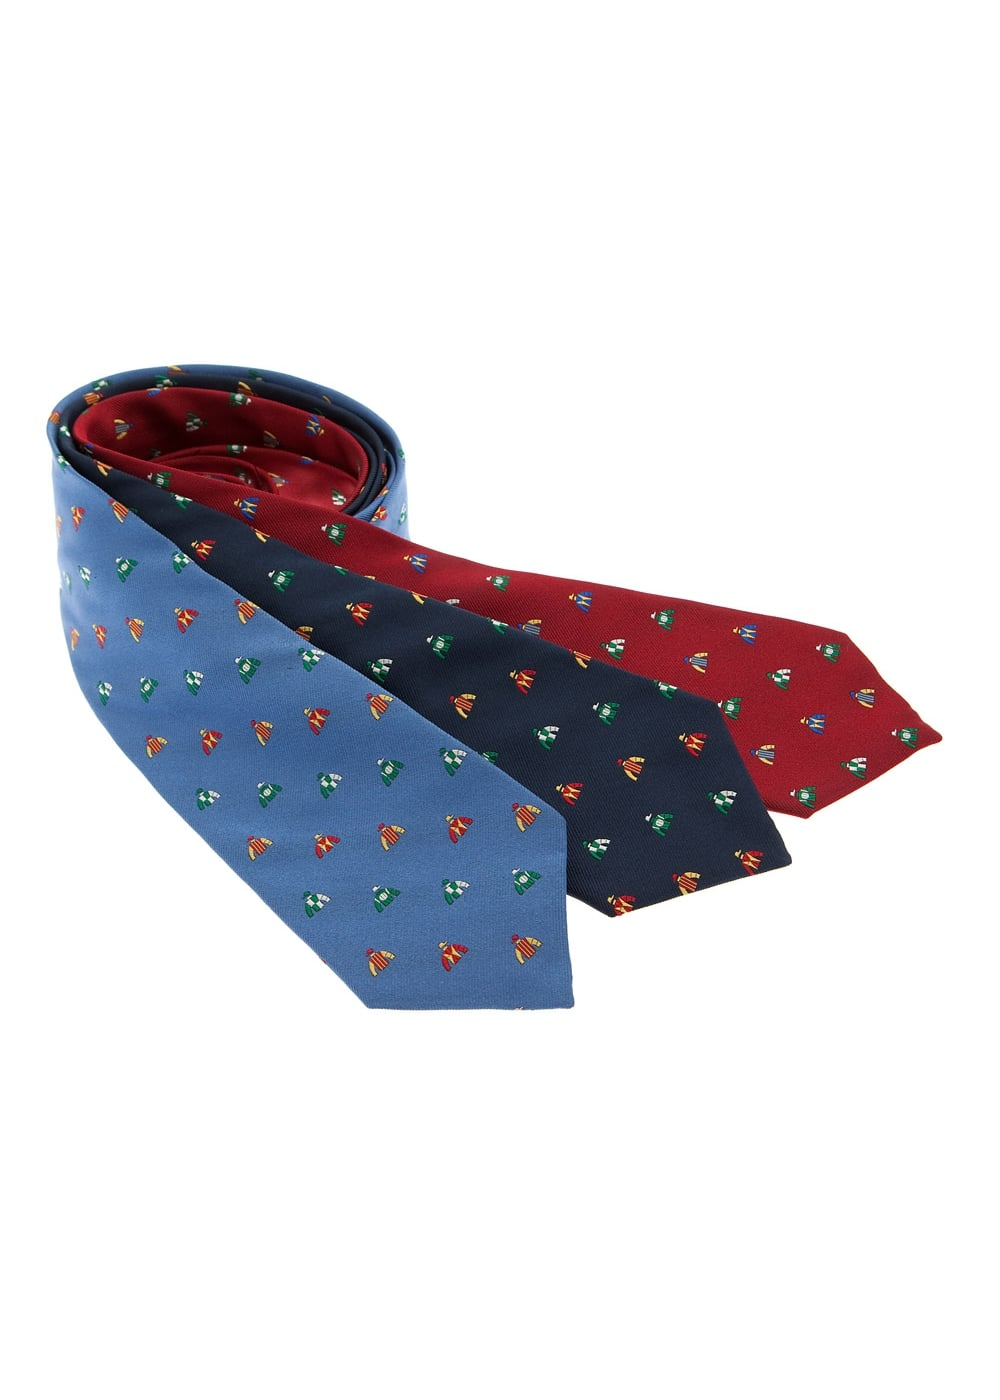 Atkinsons Racing Silks Silk Tie Large Image